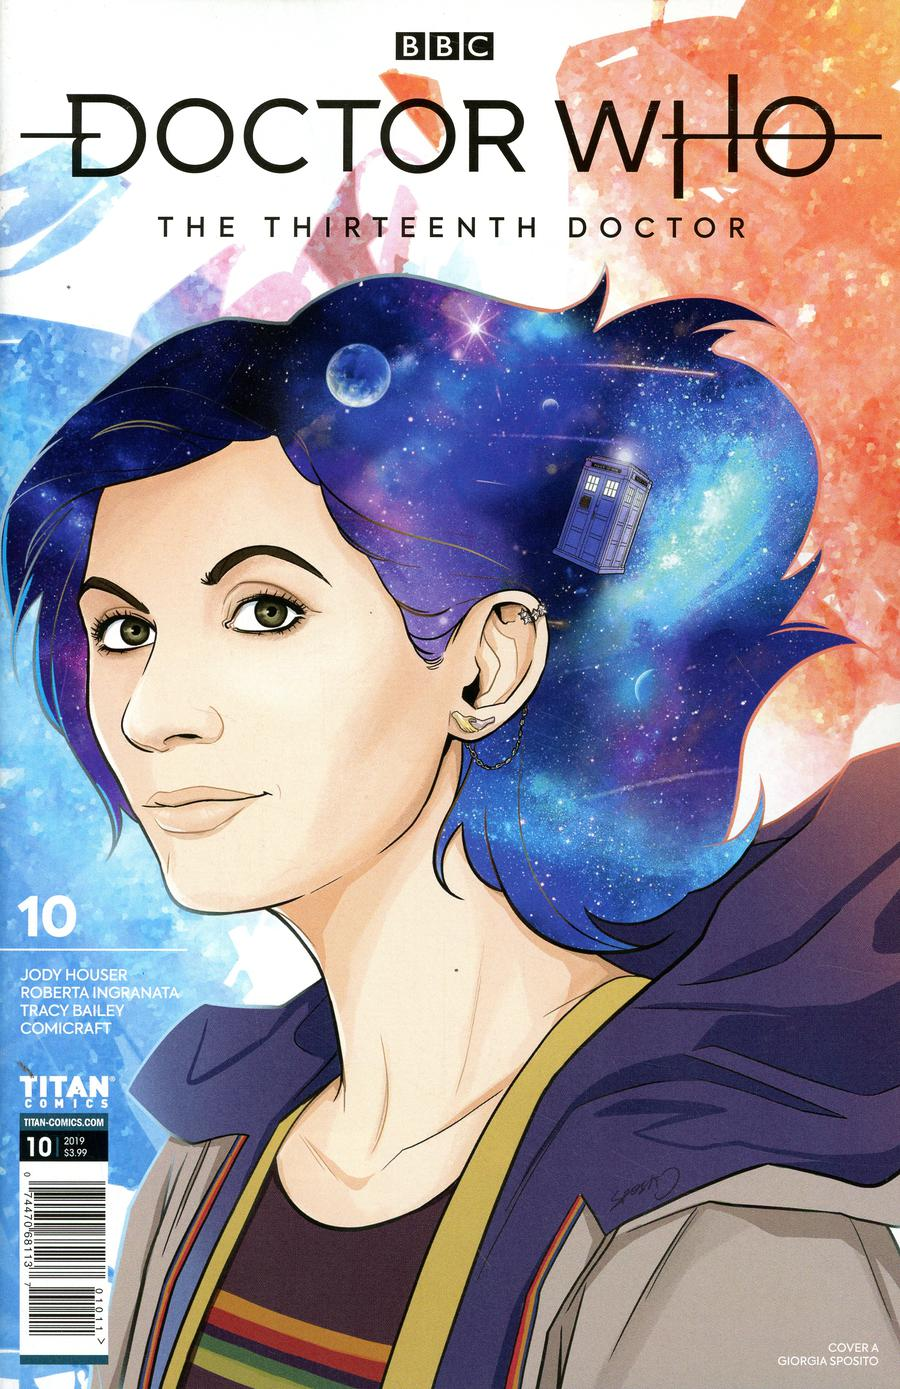 Doctor Who 13th Doctor #10 Cover A Regular Giorgia Sposito Cover